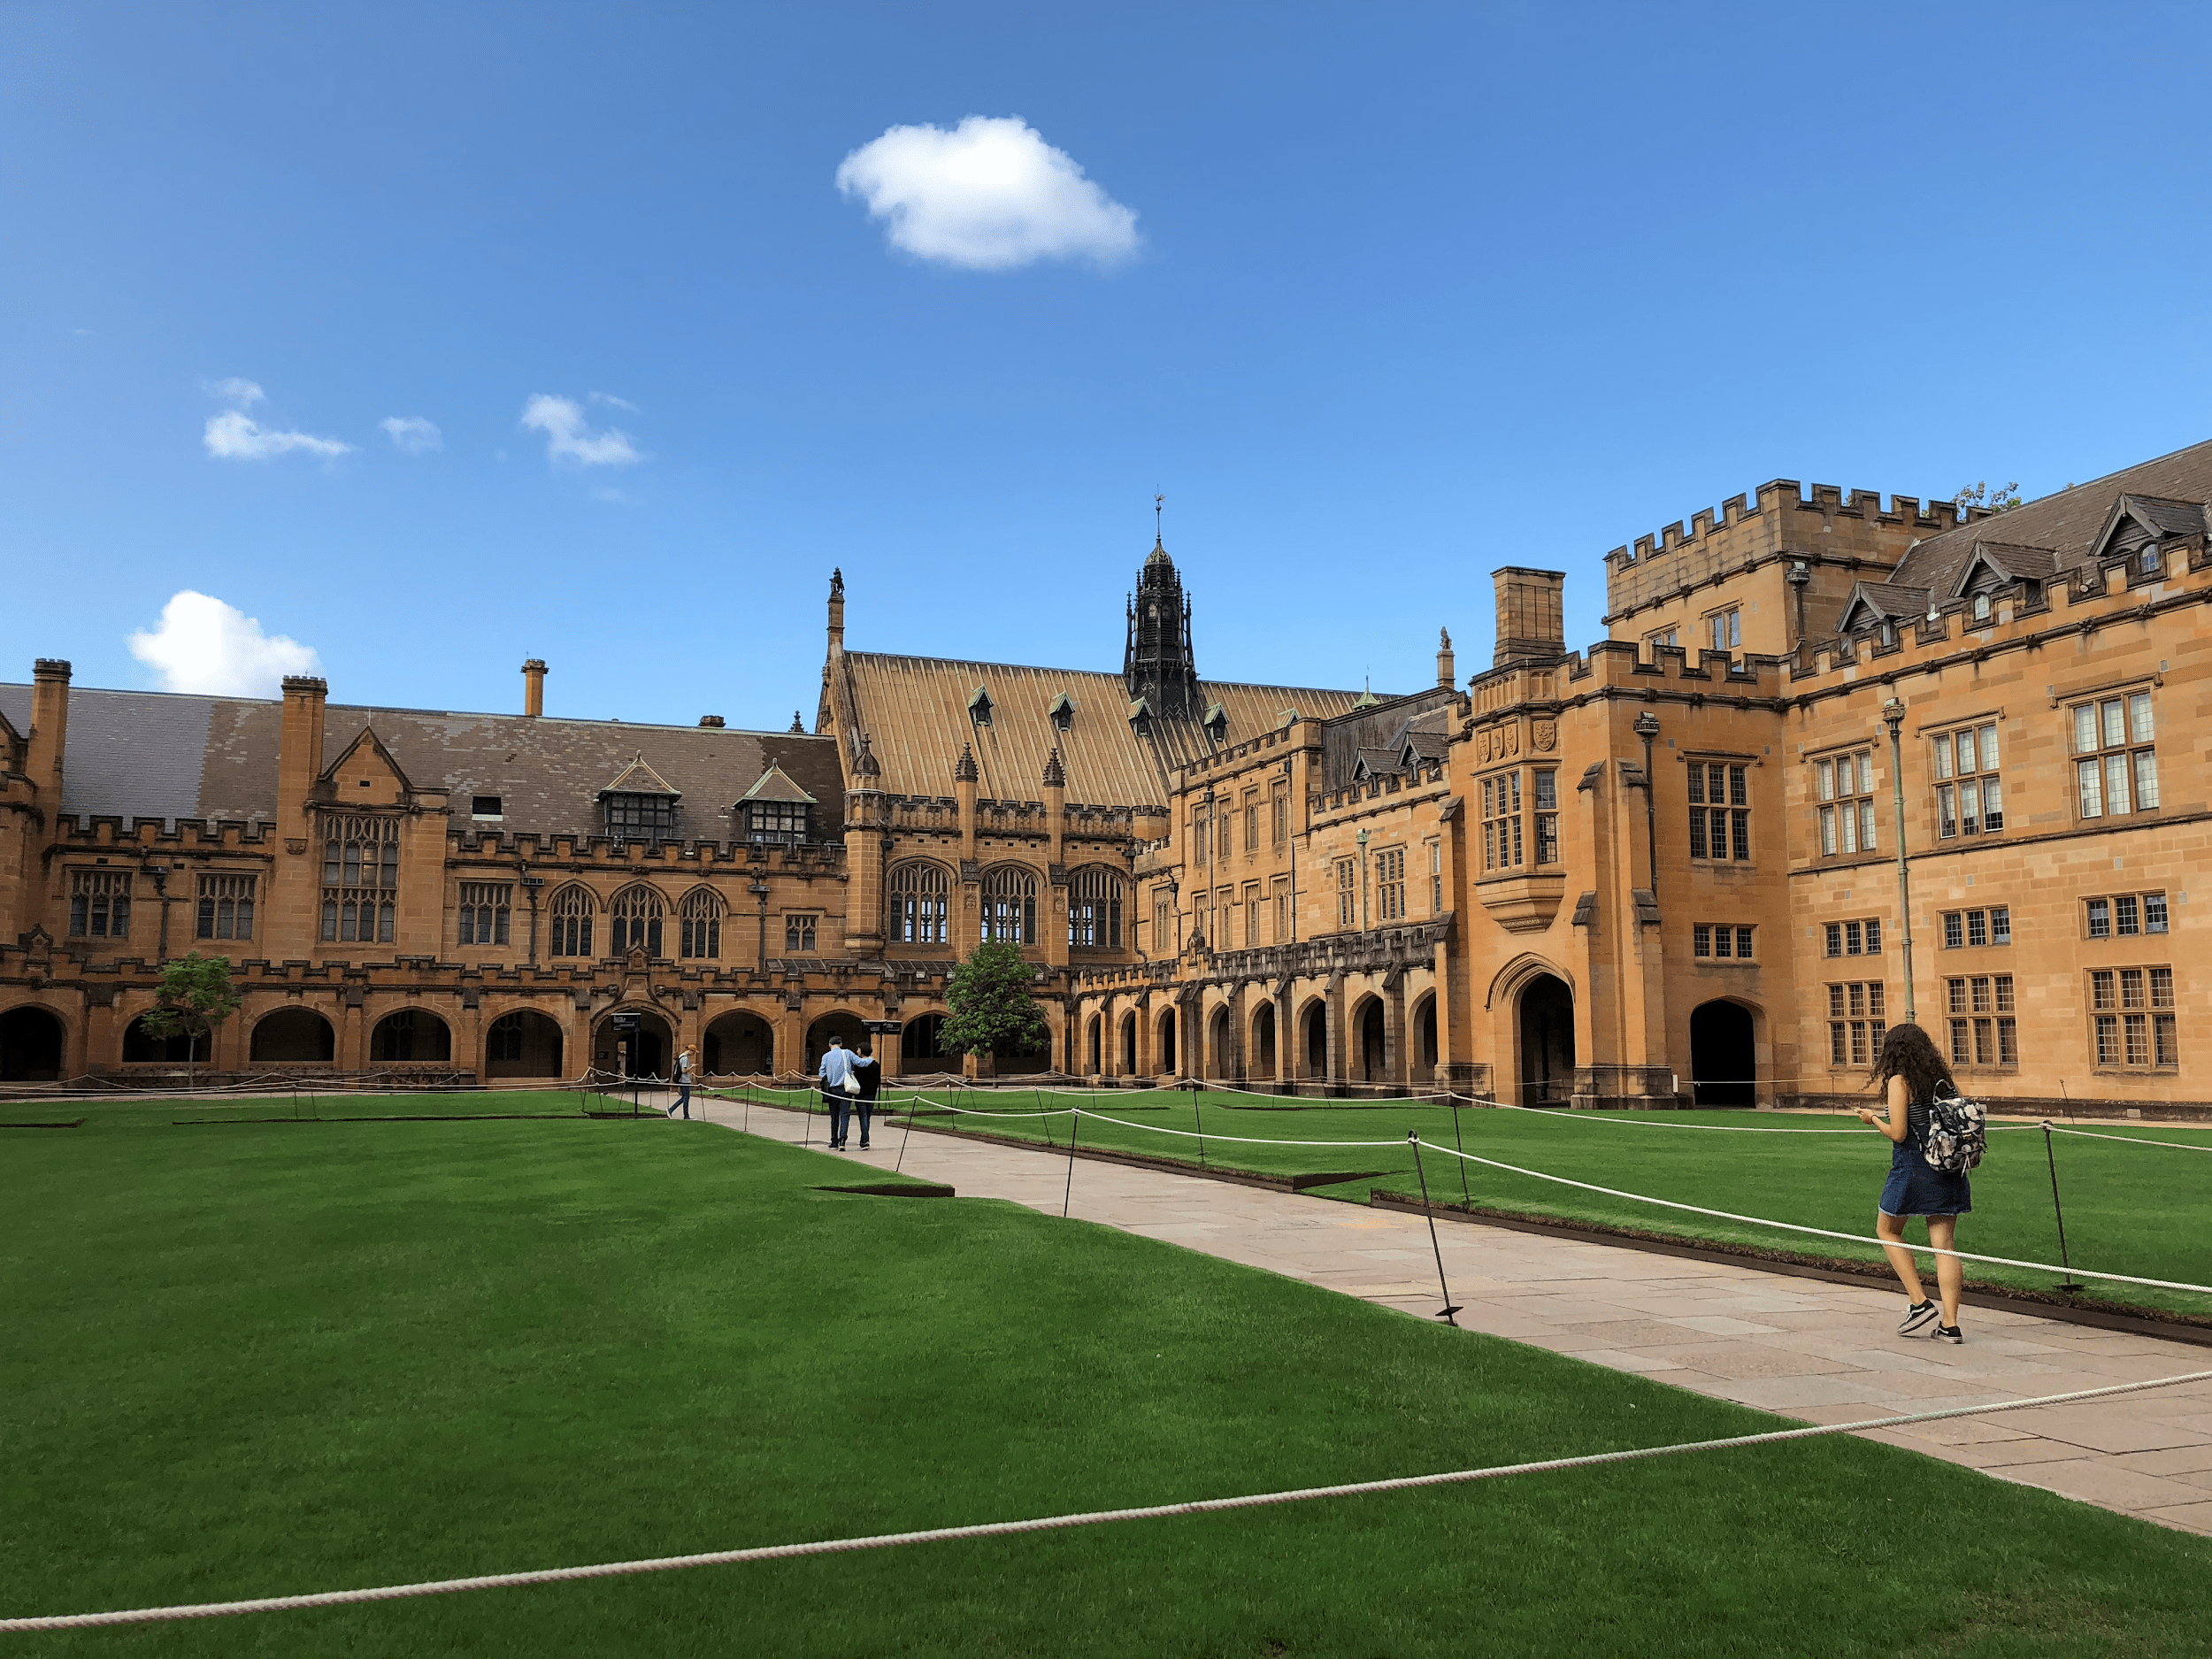 large old building with green grass on university of Sydney campus